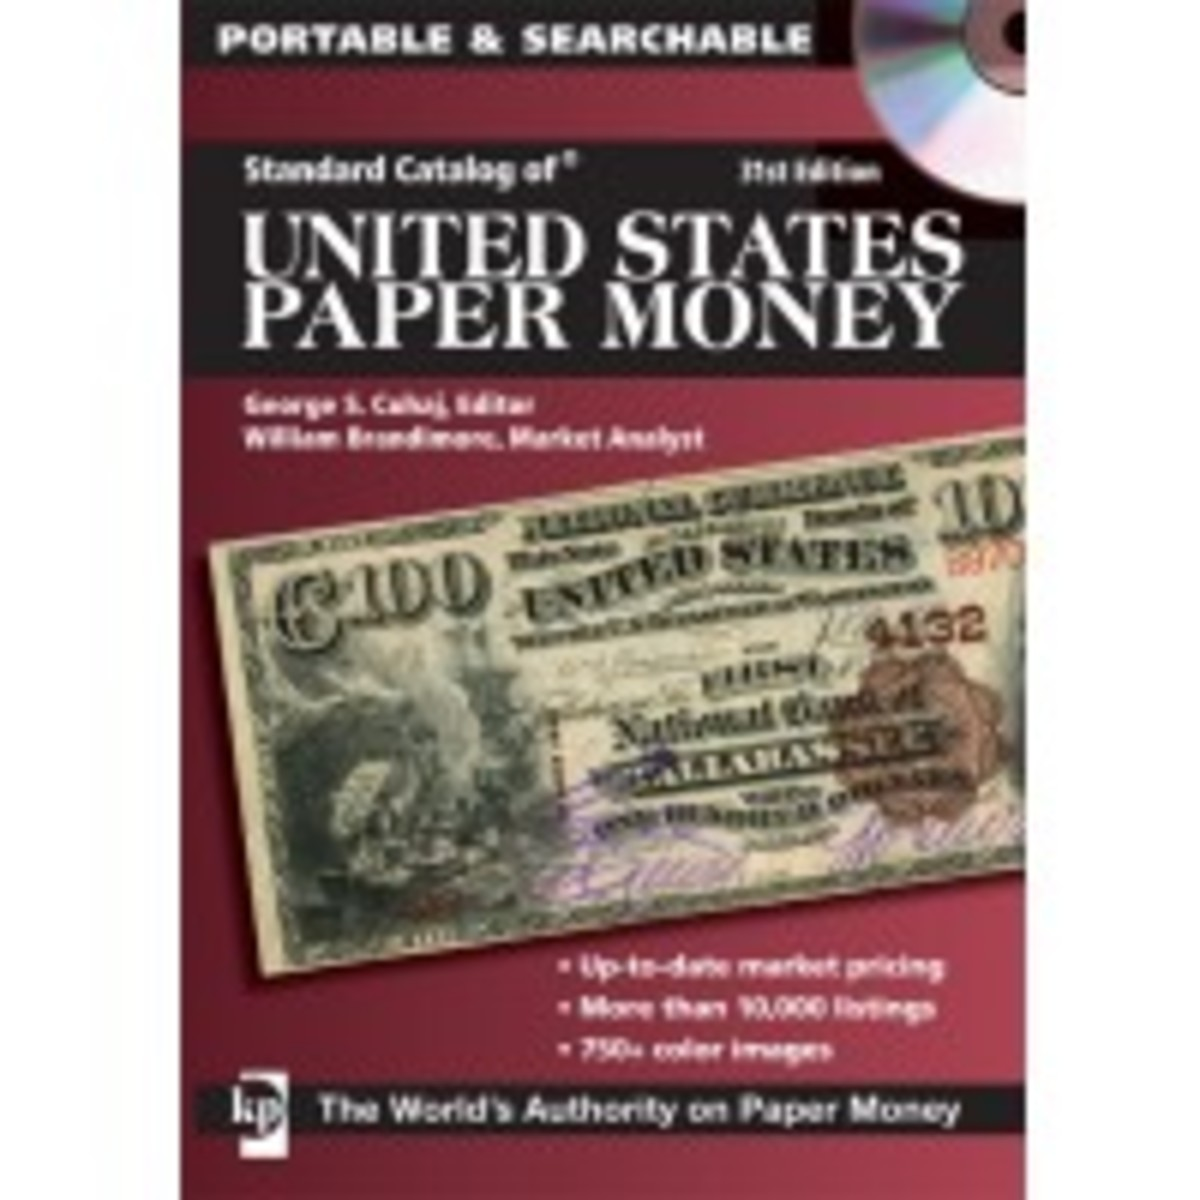 Complete coverage of U.S. Currency and current market prices is now just a click of the mouse away!